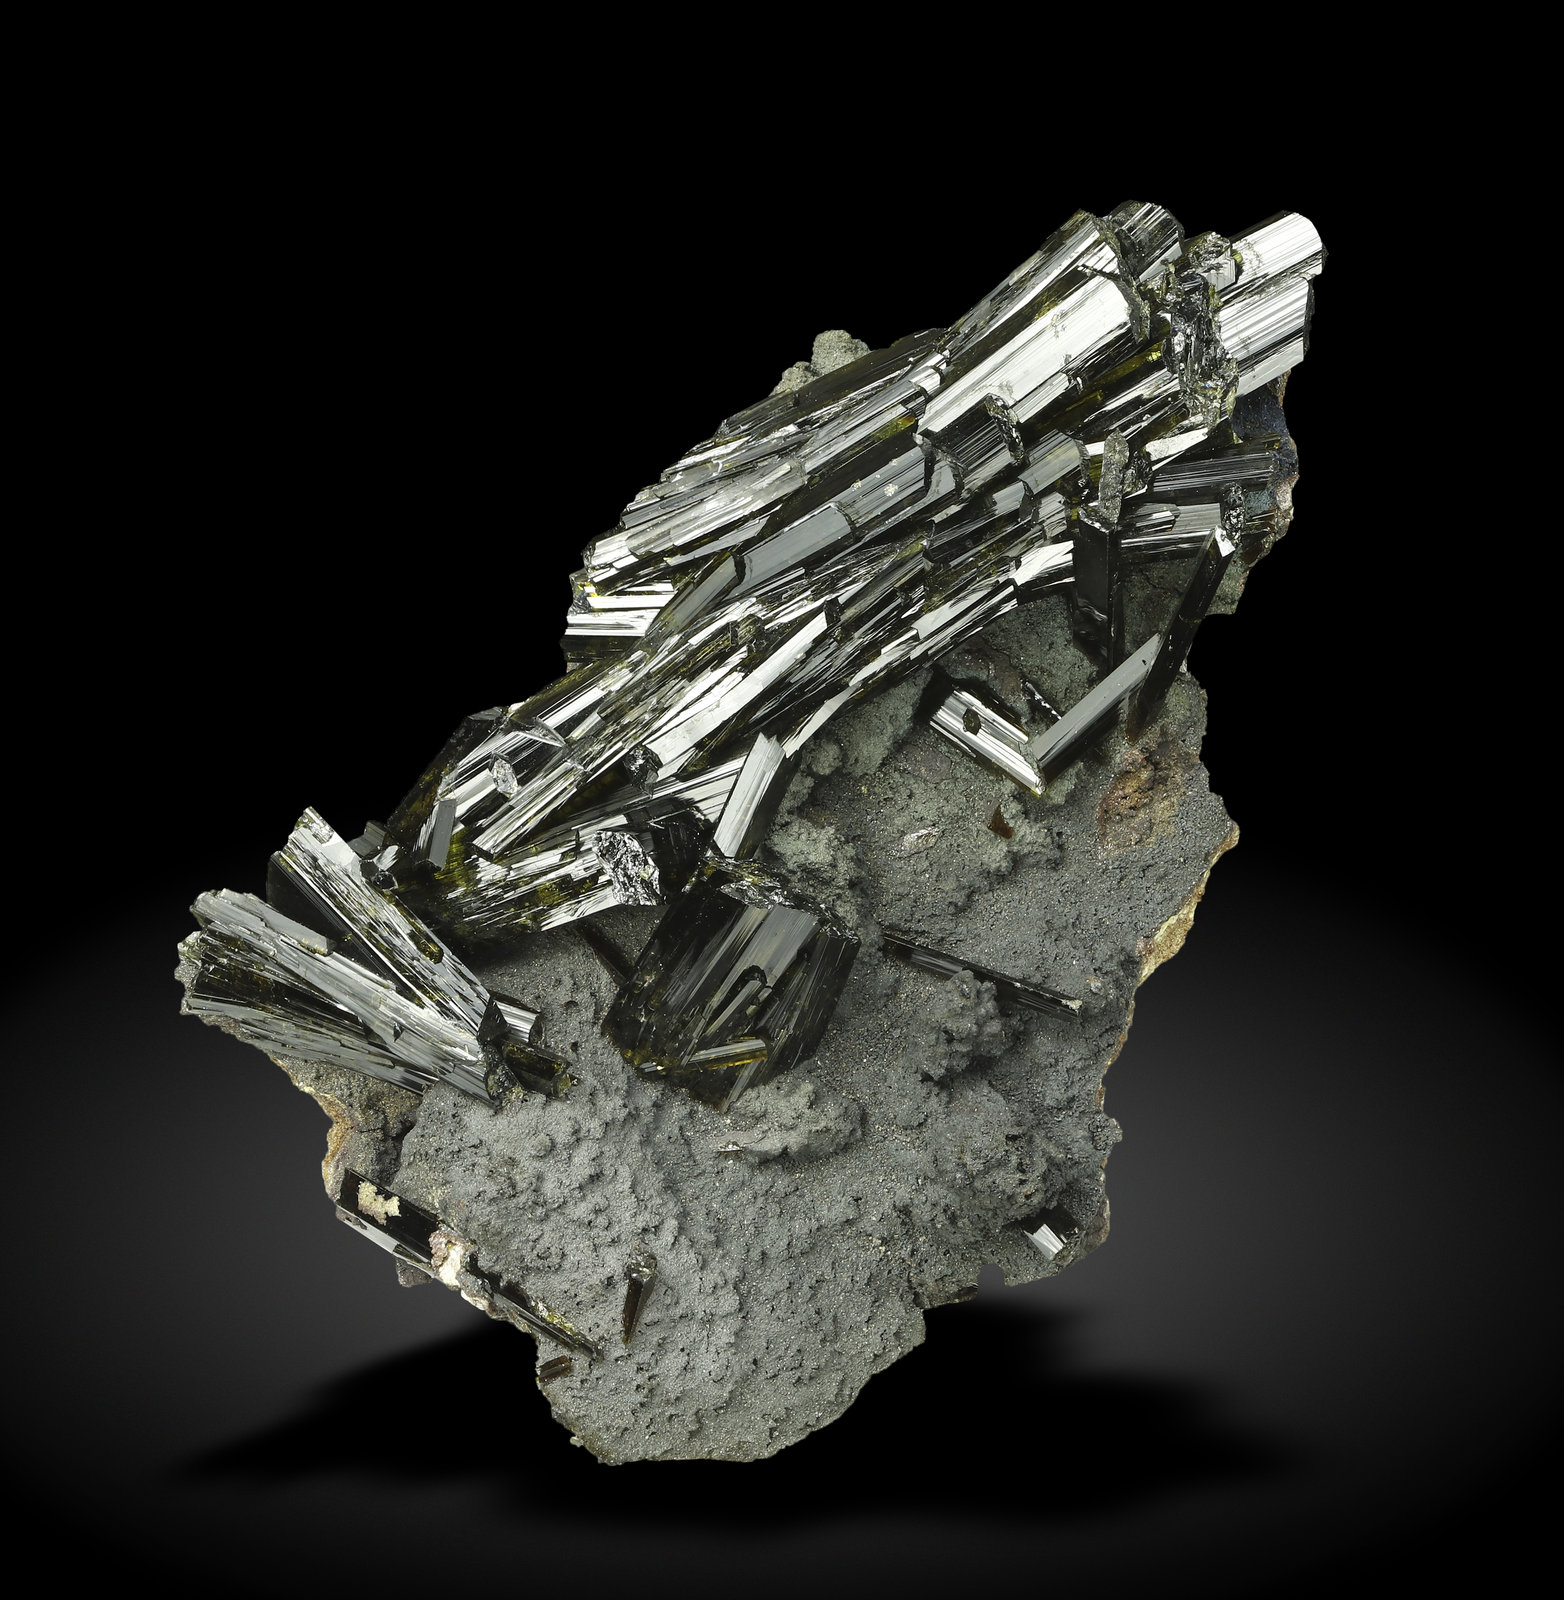 specimens/s_imagesAM0/Olivenite-TF49AM0_2780_f.jpg